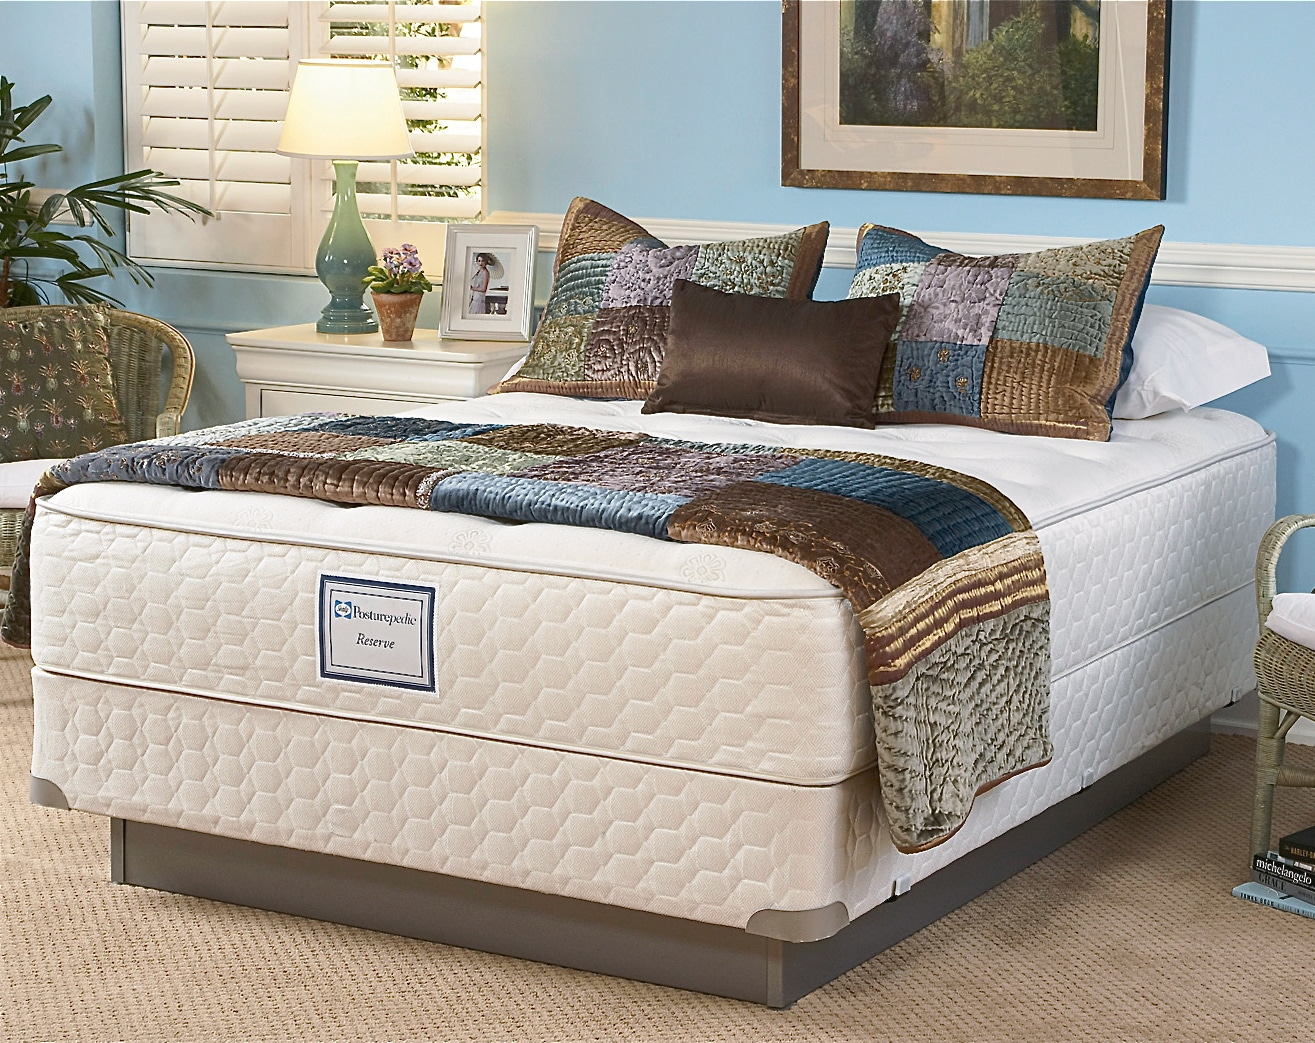 memory foam mattress by Sealy